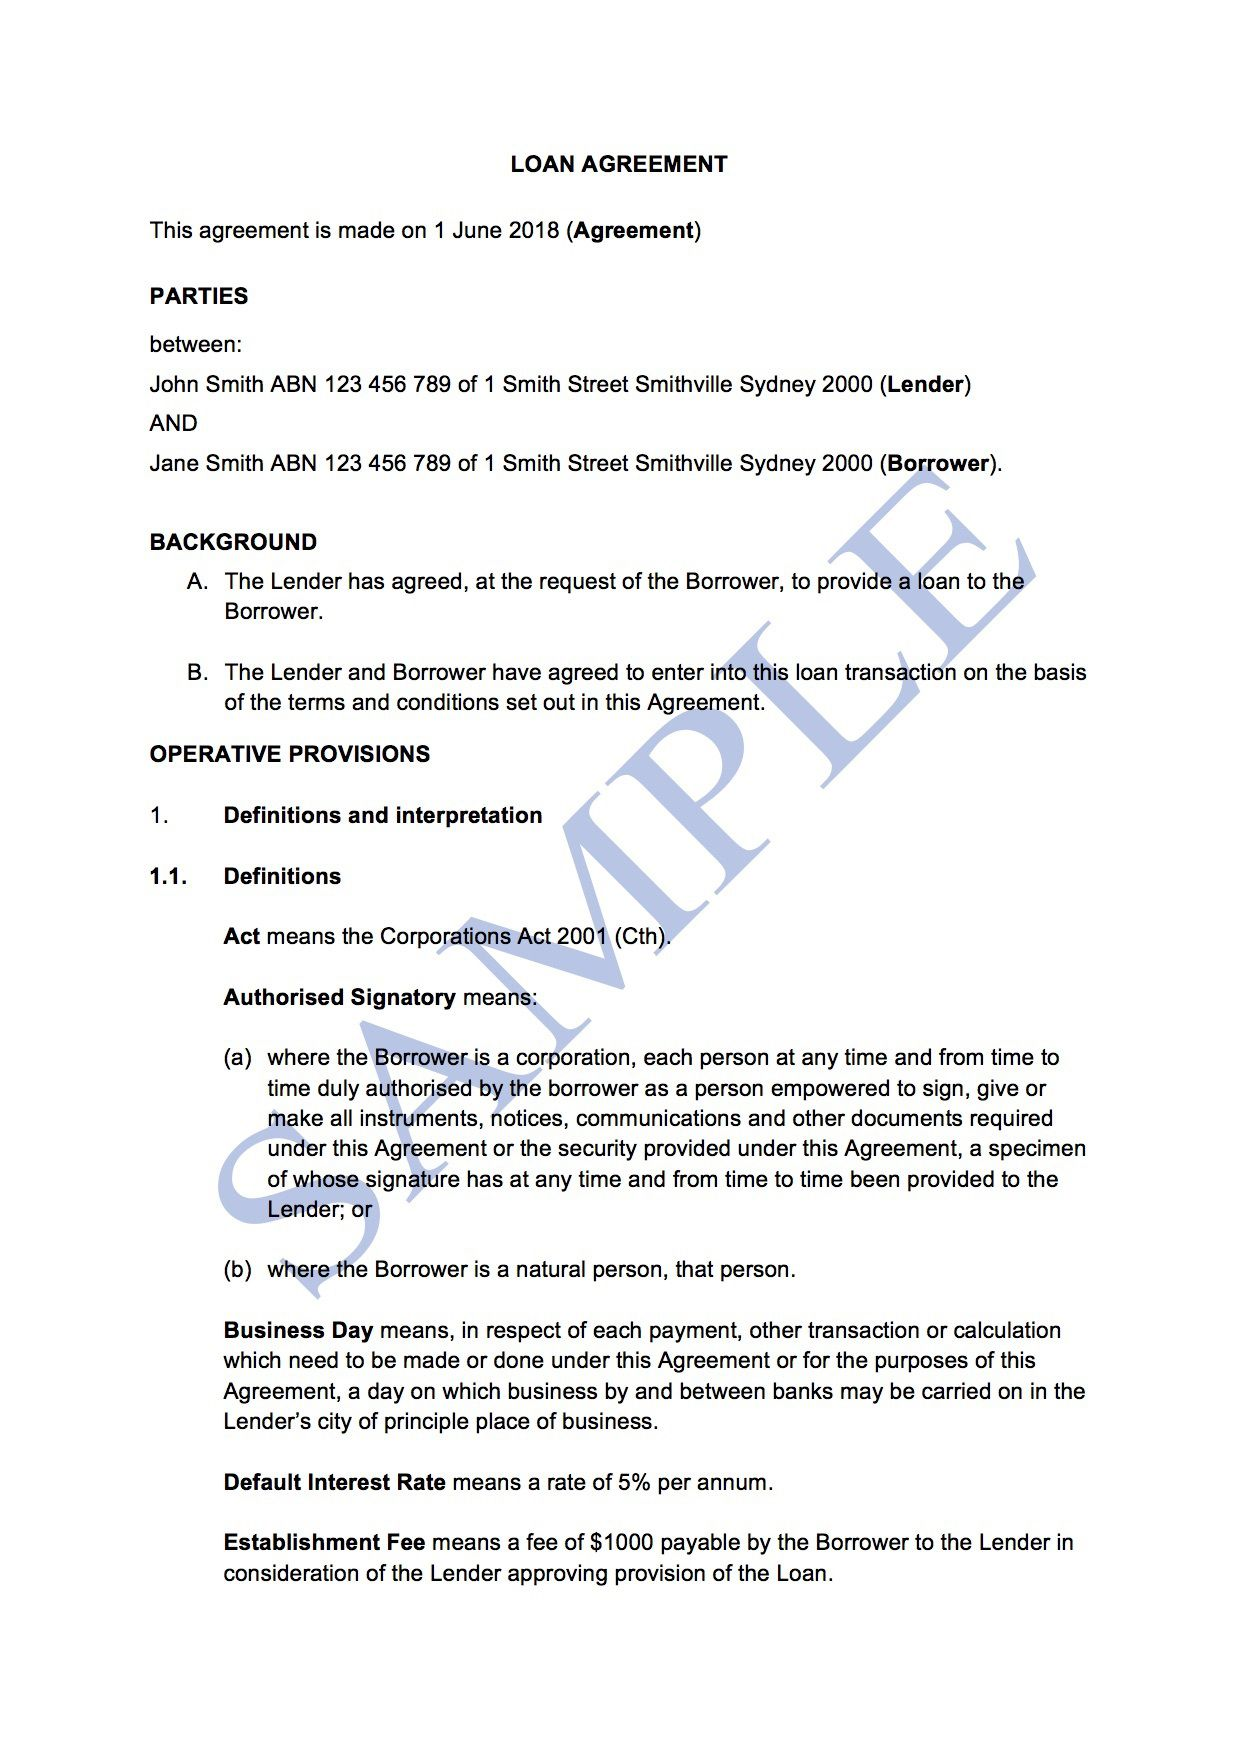 007 Simple Family Loan Agreement Template Australia Highest Clarity Full